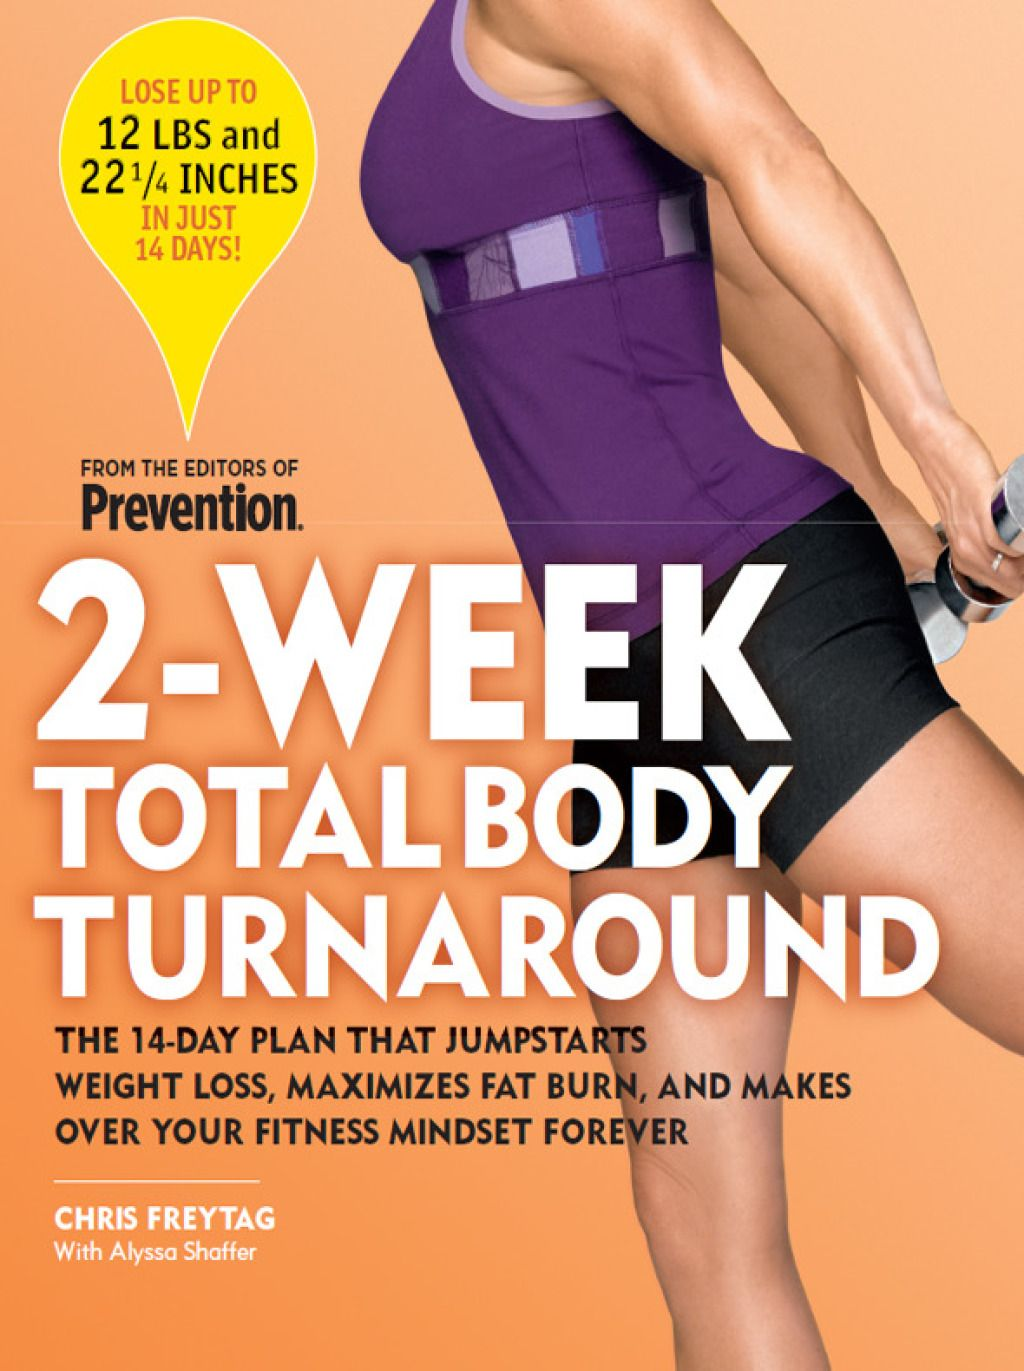 how to lose 15 pounds in 2 weeks on keto